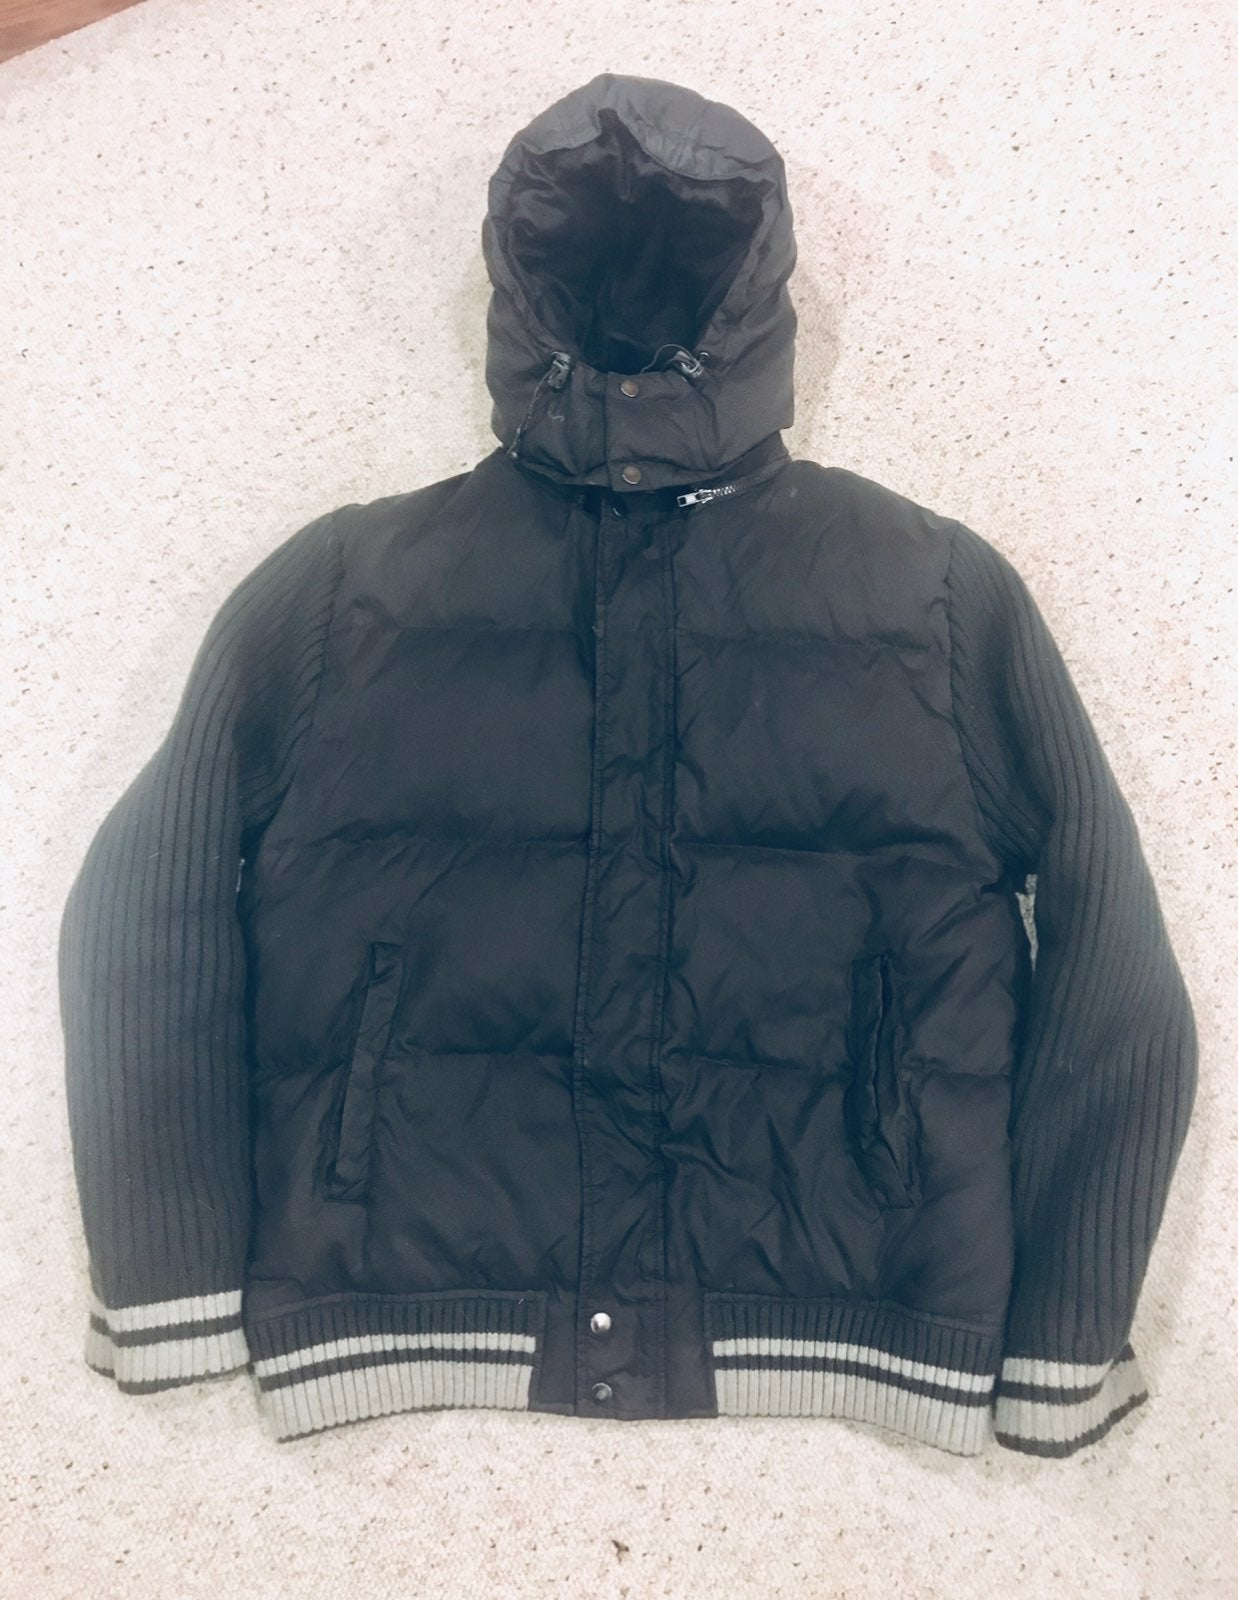 Buffalo Winter Jacket Parka Coat XL